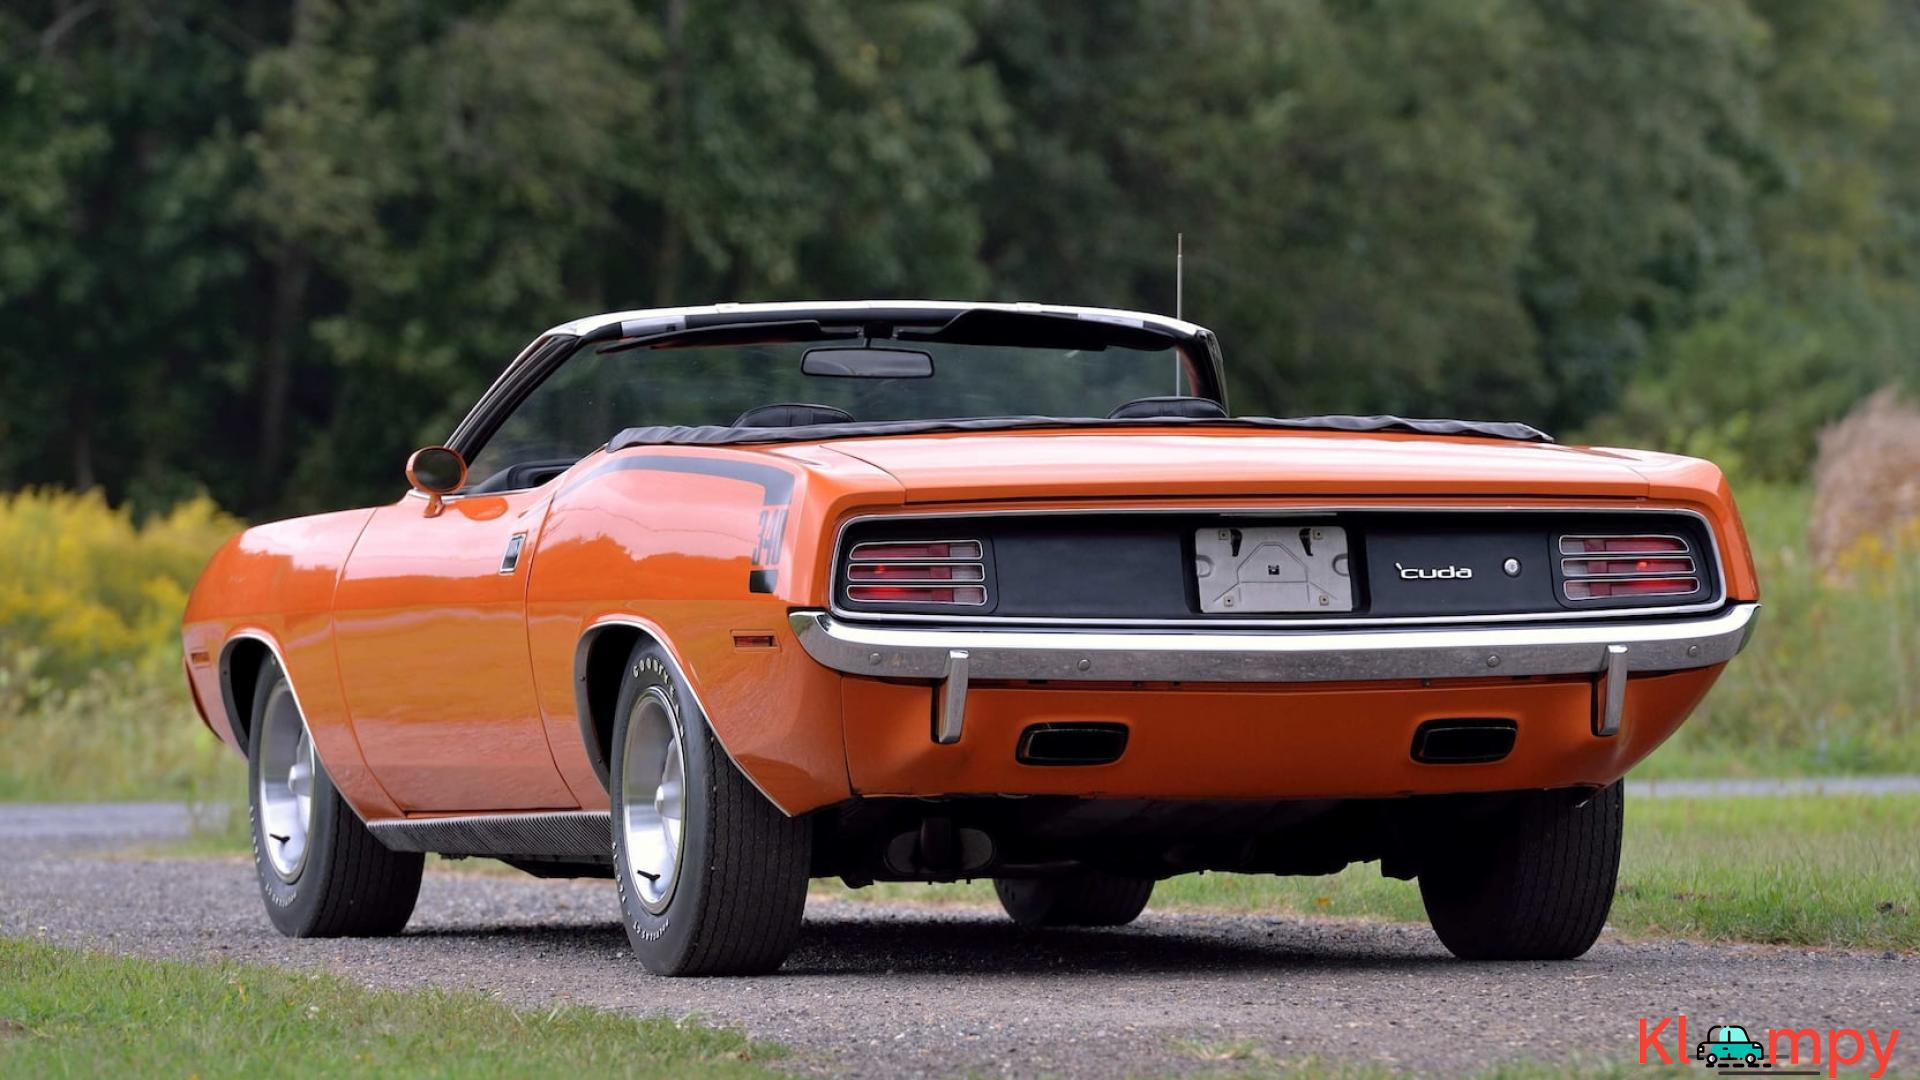 1970 Plymouth Cuda Convertible 340 Matching Numbers - 15/17